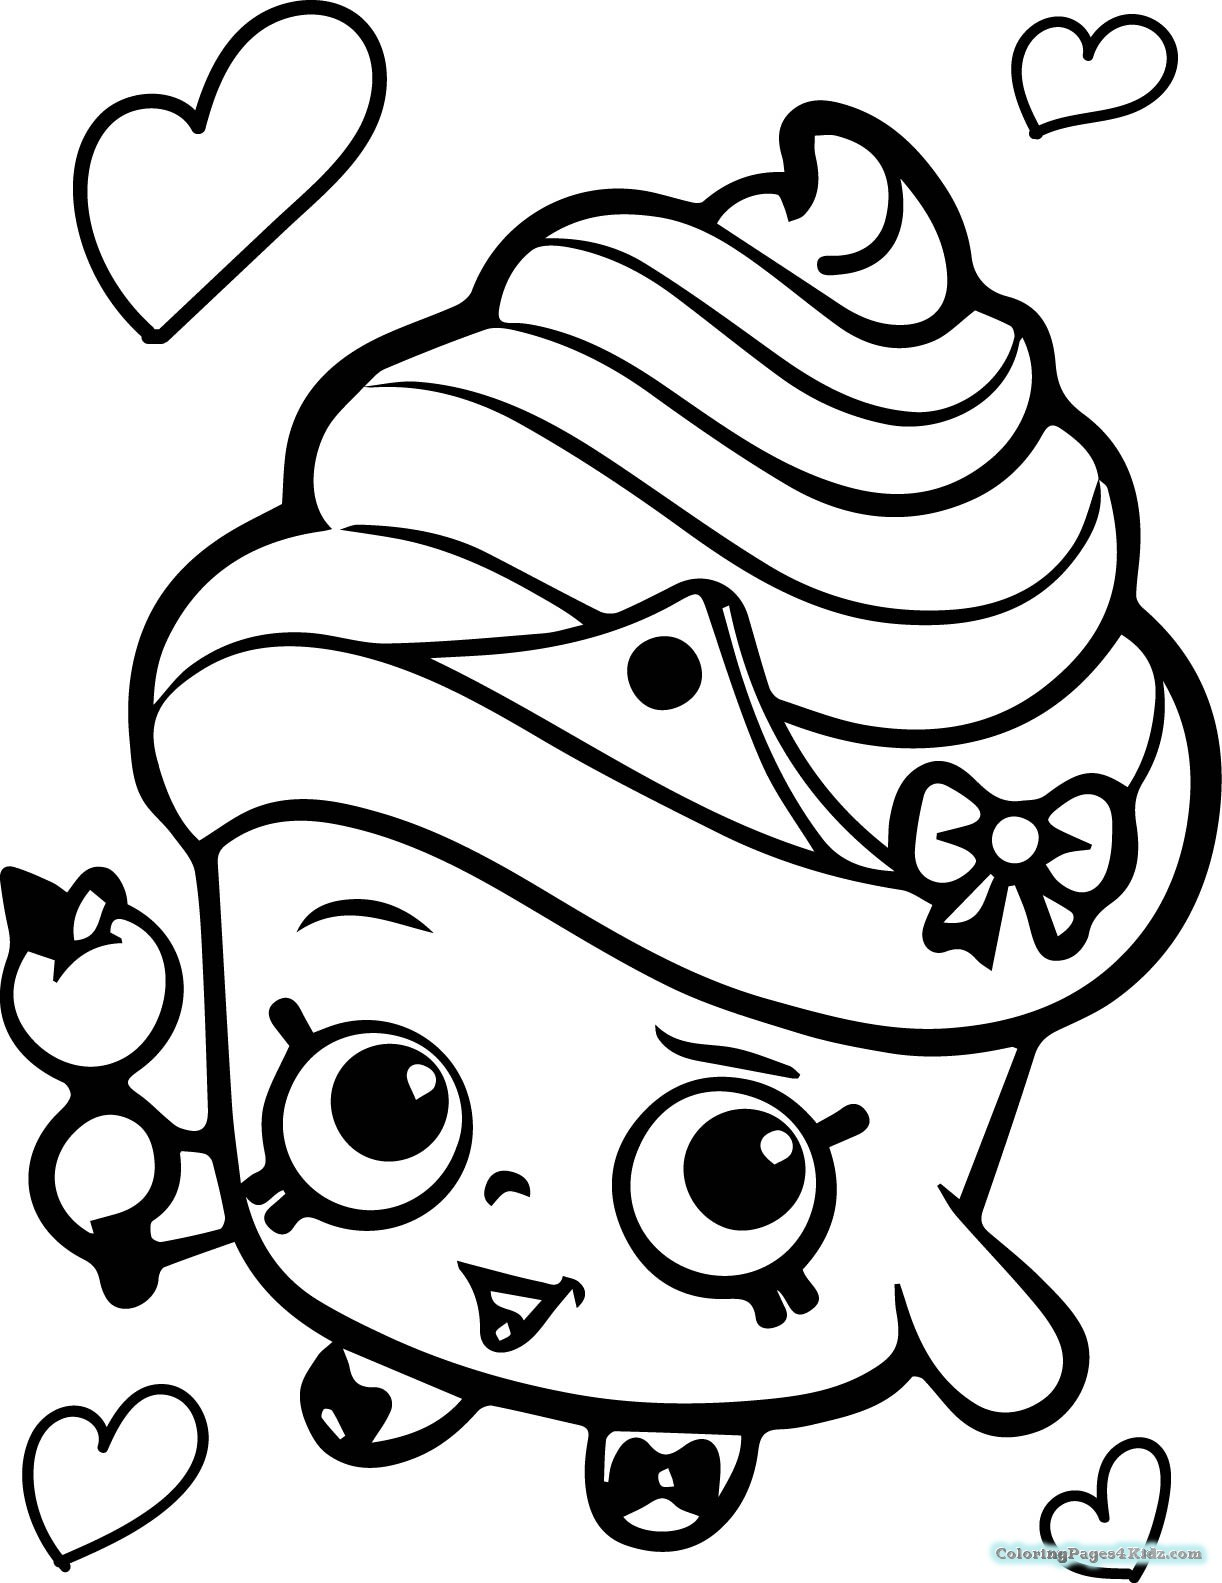 shopkin coloring pictures shopkins coloring pages best coloring pages for kids pictures shopkin coloring